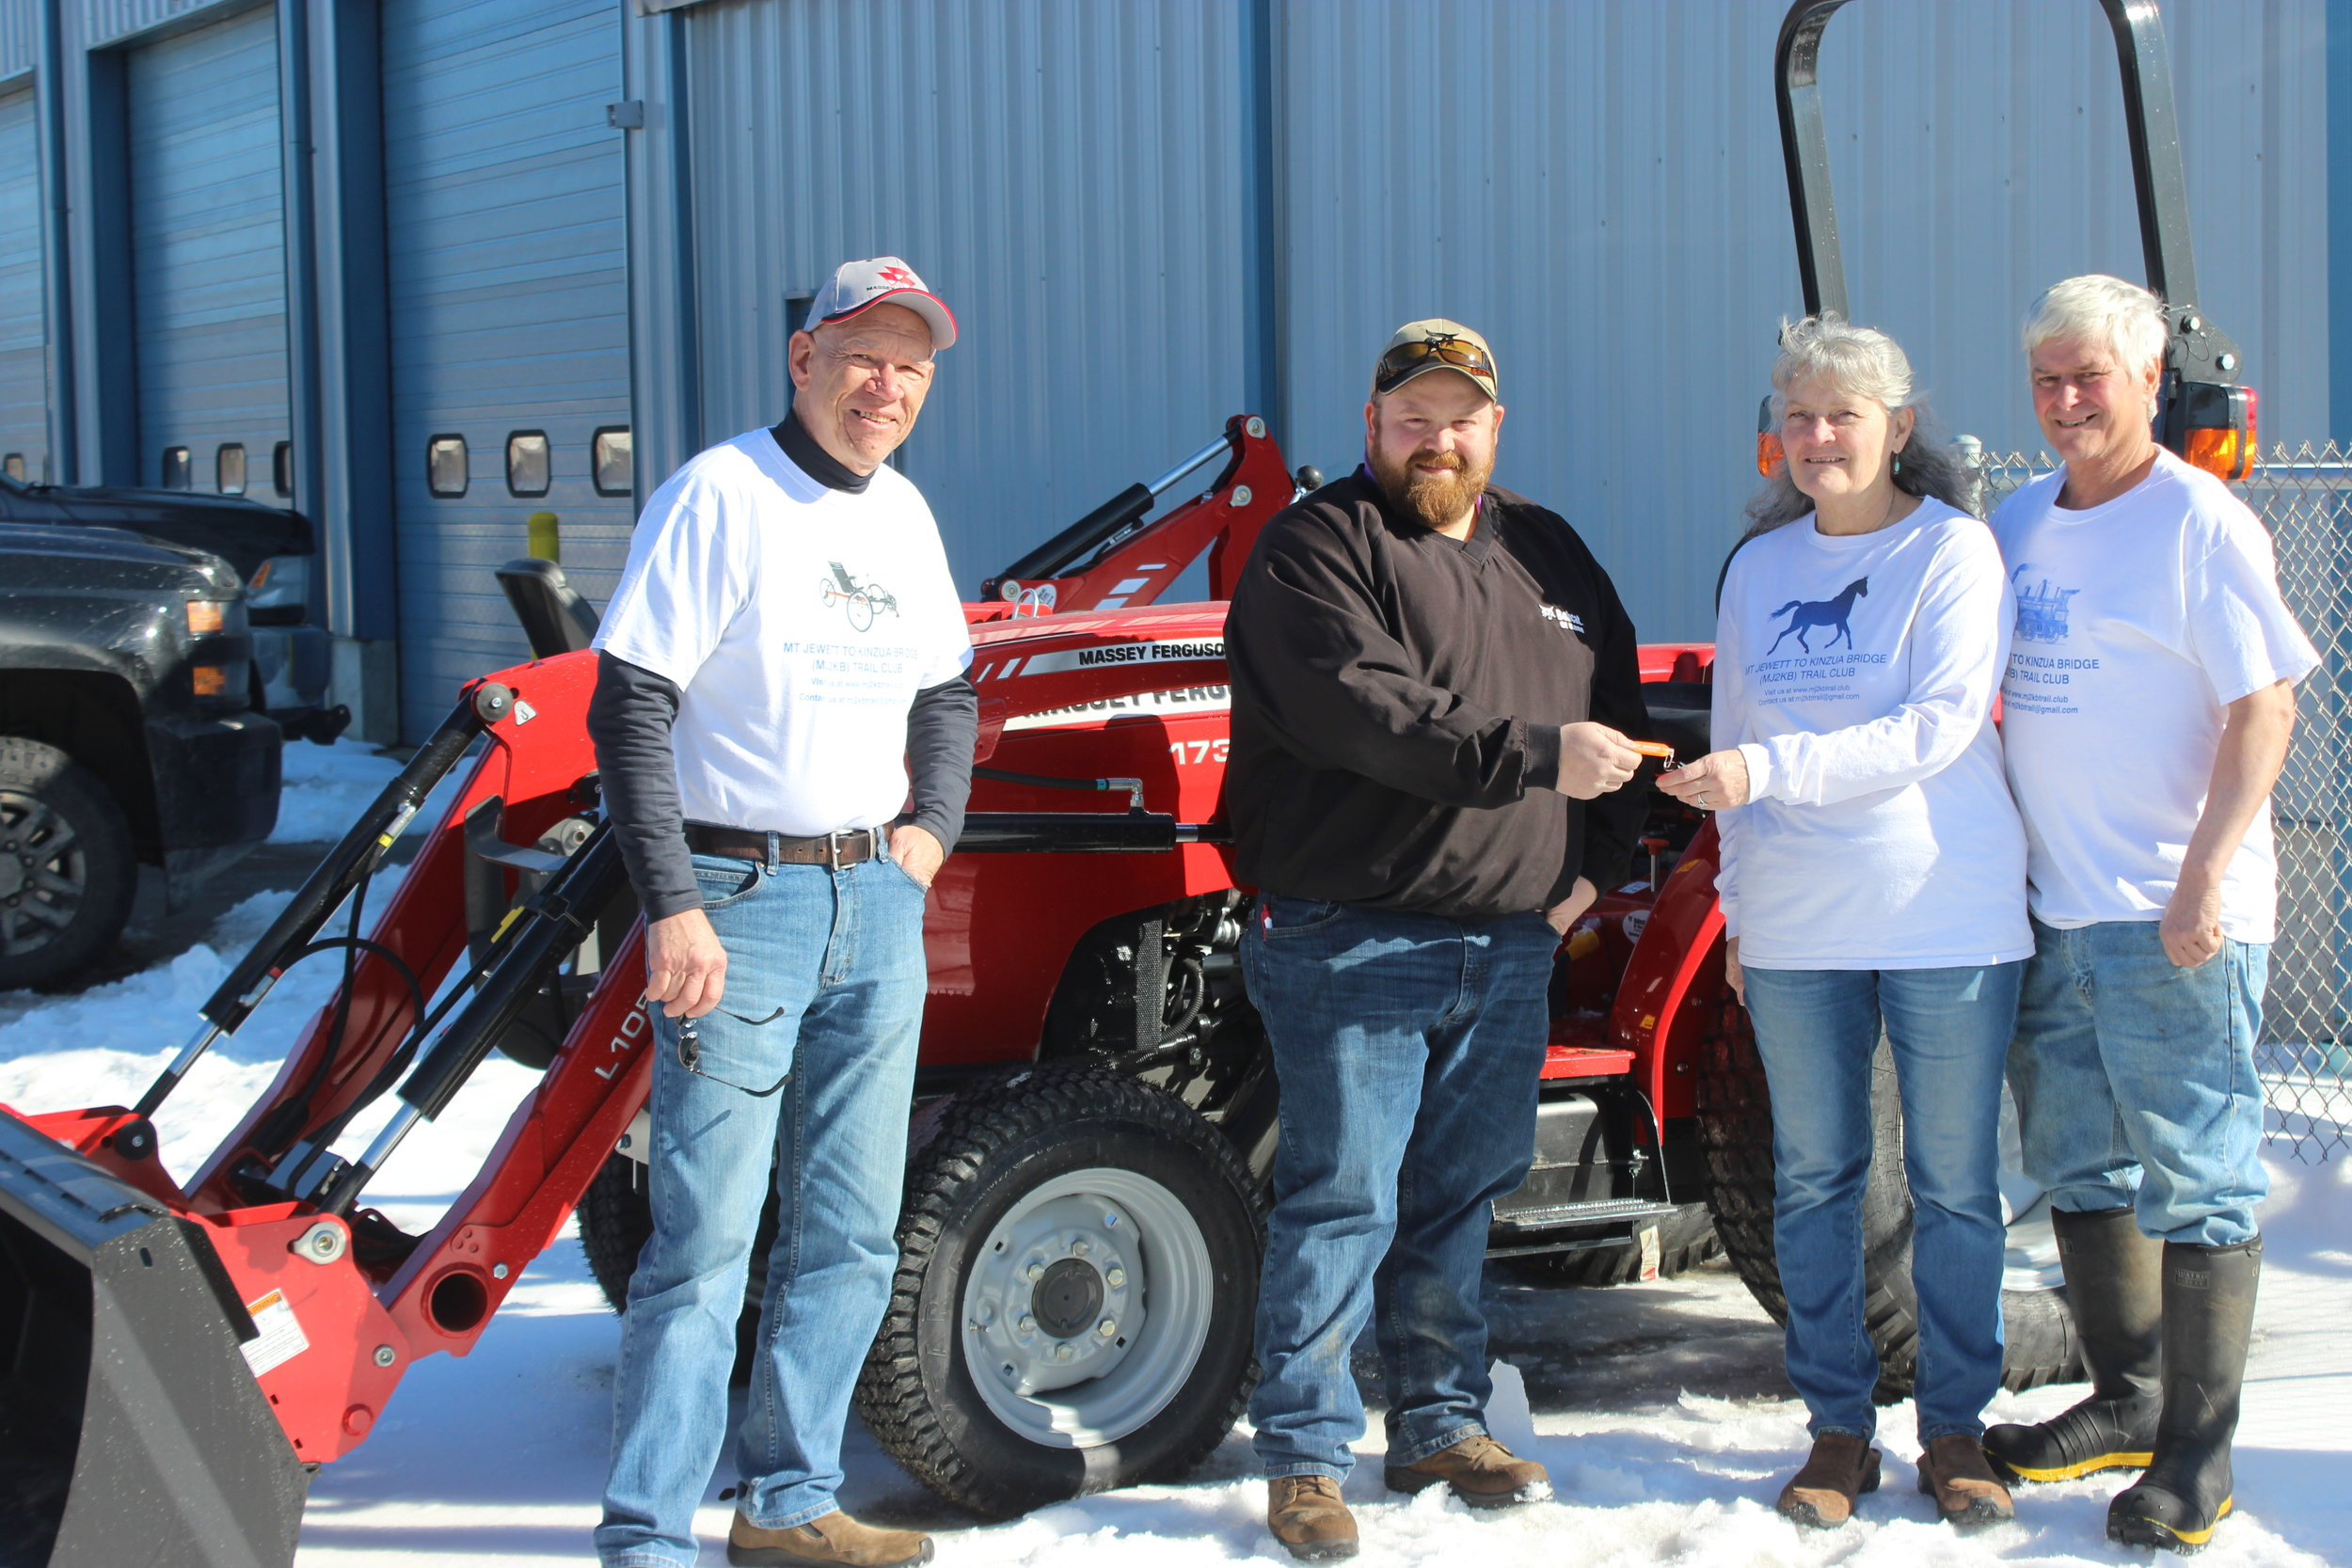 Getting the keys to our new tractor purchased through a grant from the Pittsburgh Foundation Trail Fund. From left to right: Jack Forquer, Derek Carlson (Bobcat of Kane), Carolyn & Ken Stroup. Photo-Ted Lutz (Kane Republican)